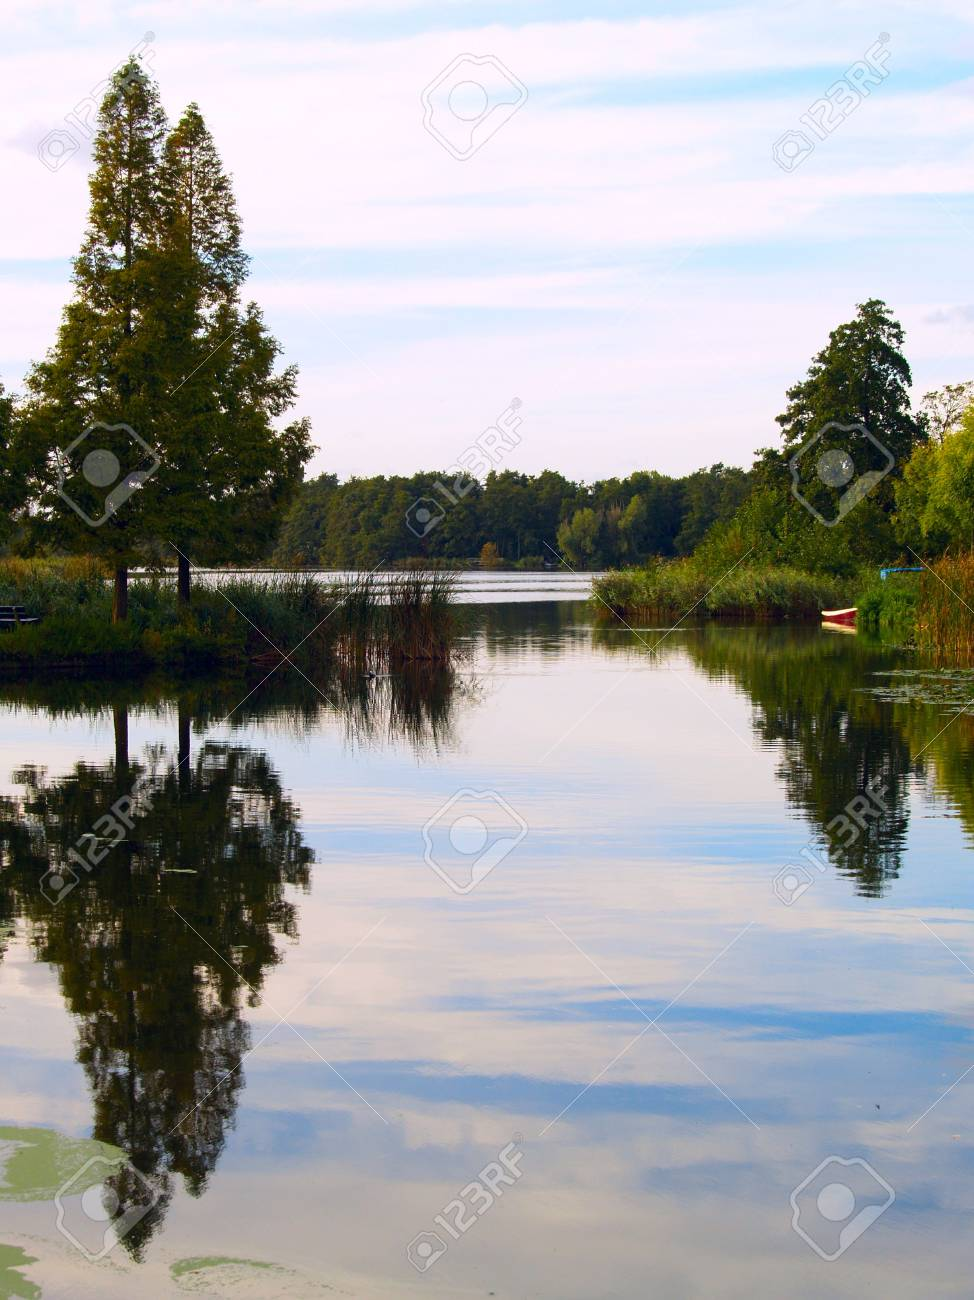 Landscape with reflecting trees and a little red boat Stock Photo - 2413442